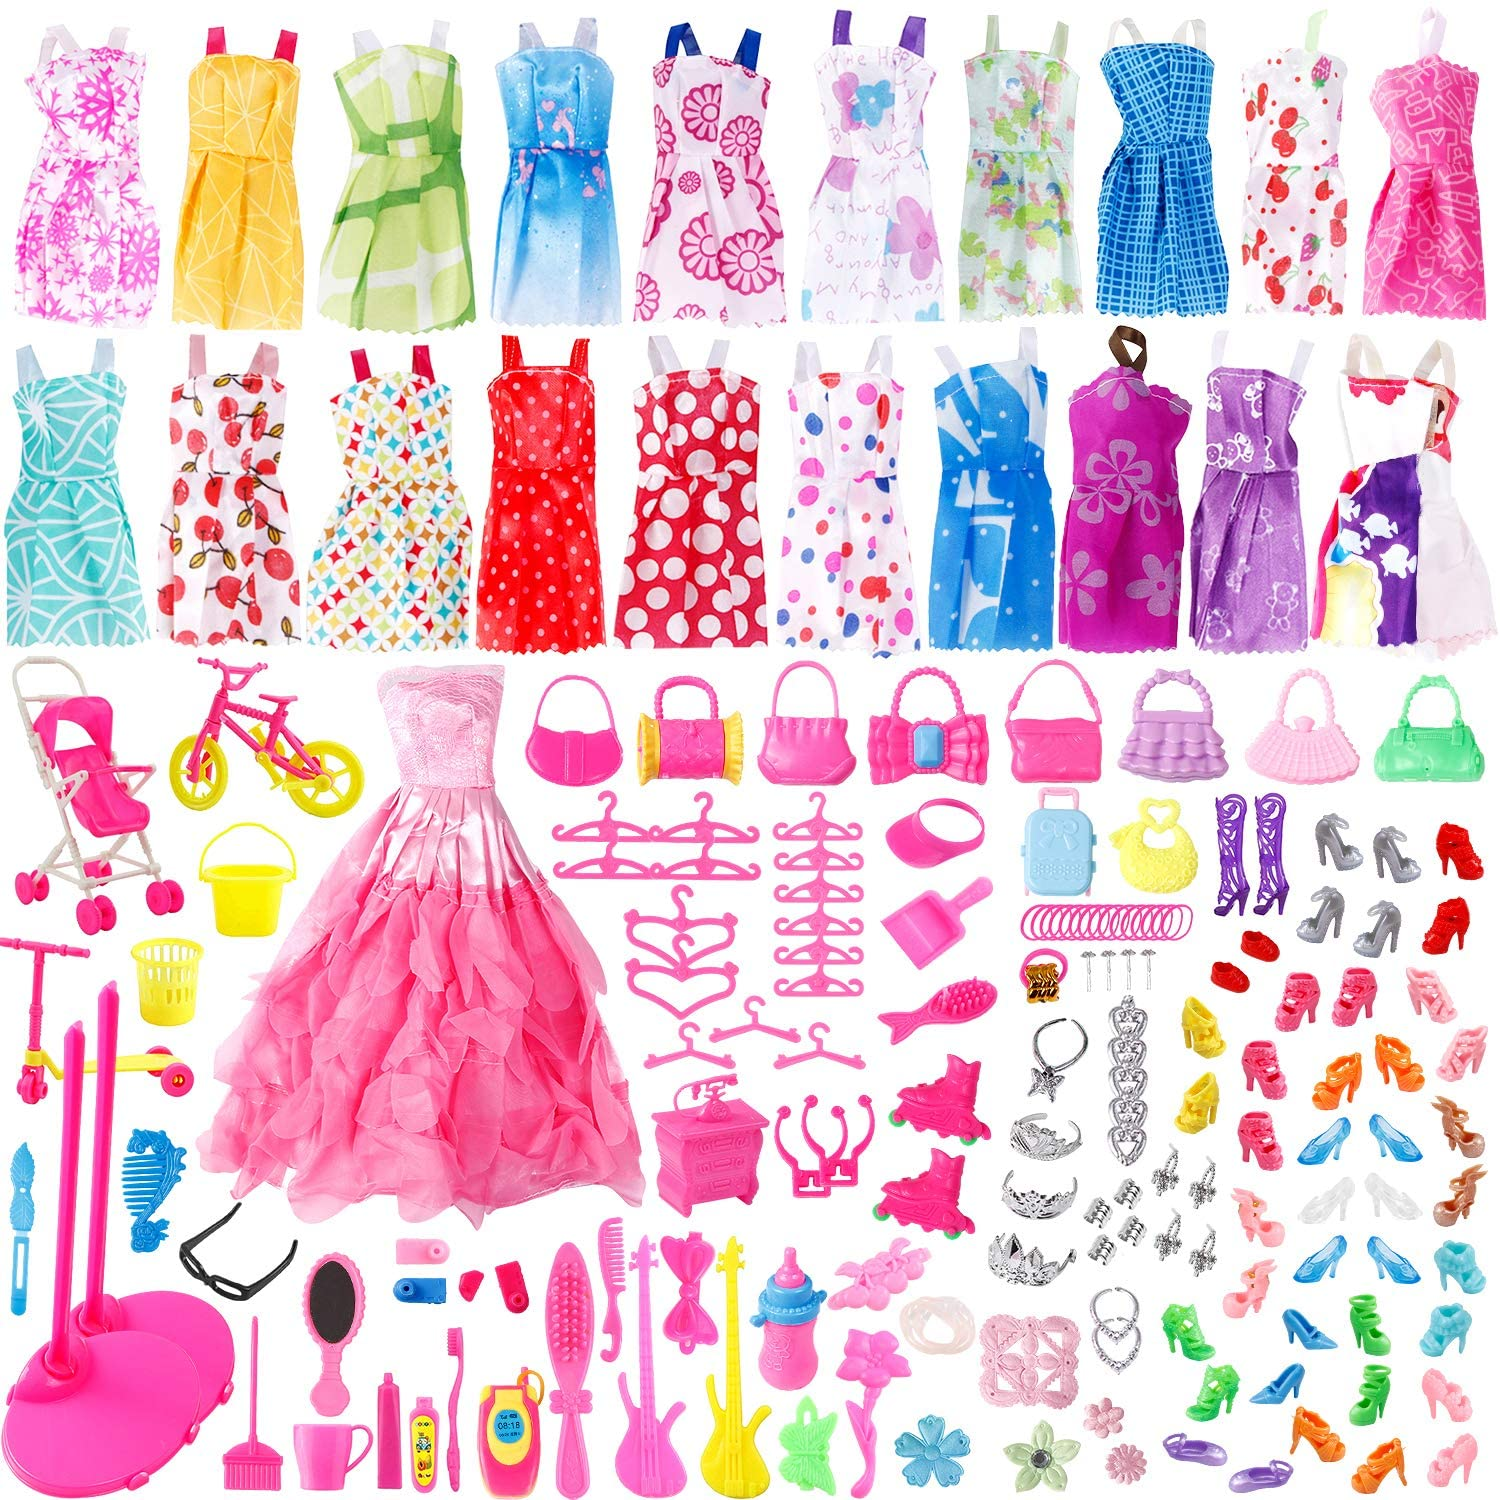 JANYUN Total 191pcs 20 Pack Clothes Party Gown Outfits and Wedding Dress for Dolls + 170 pcs Dolls Accessories Shoes Bags Necklace Mirror Hanger Tableware